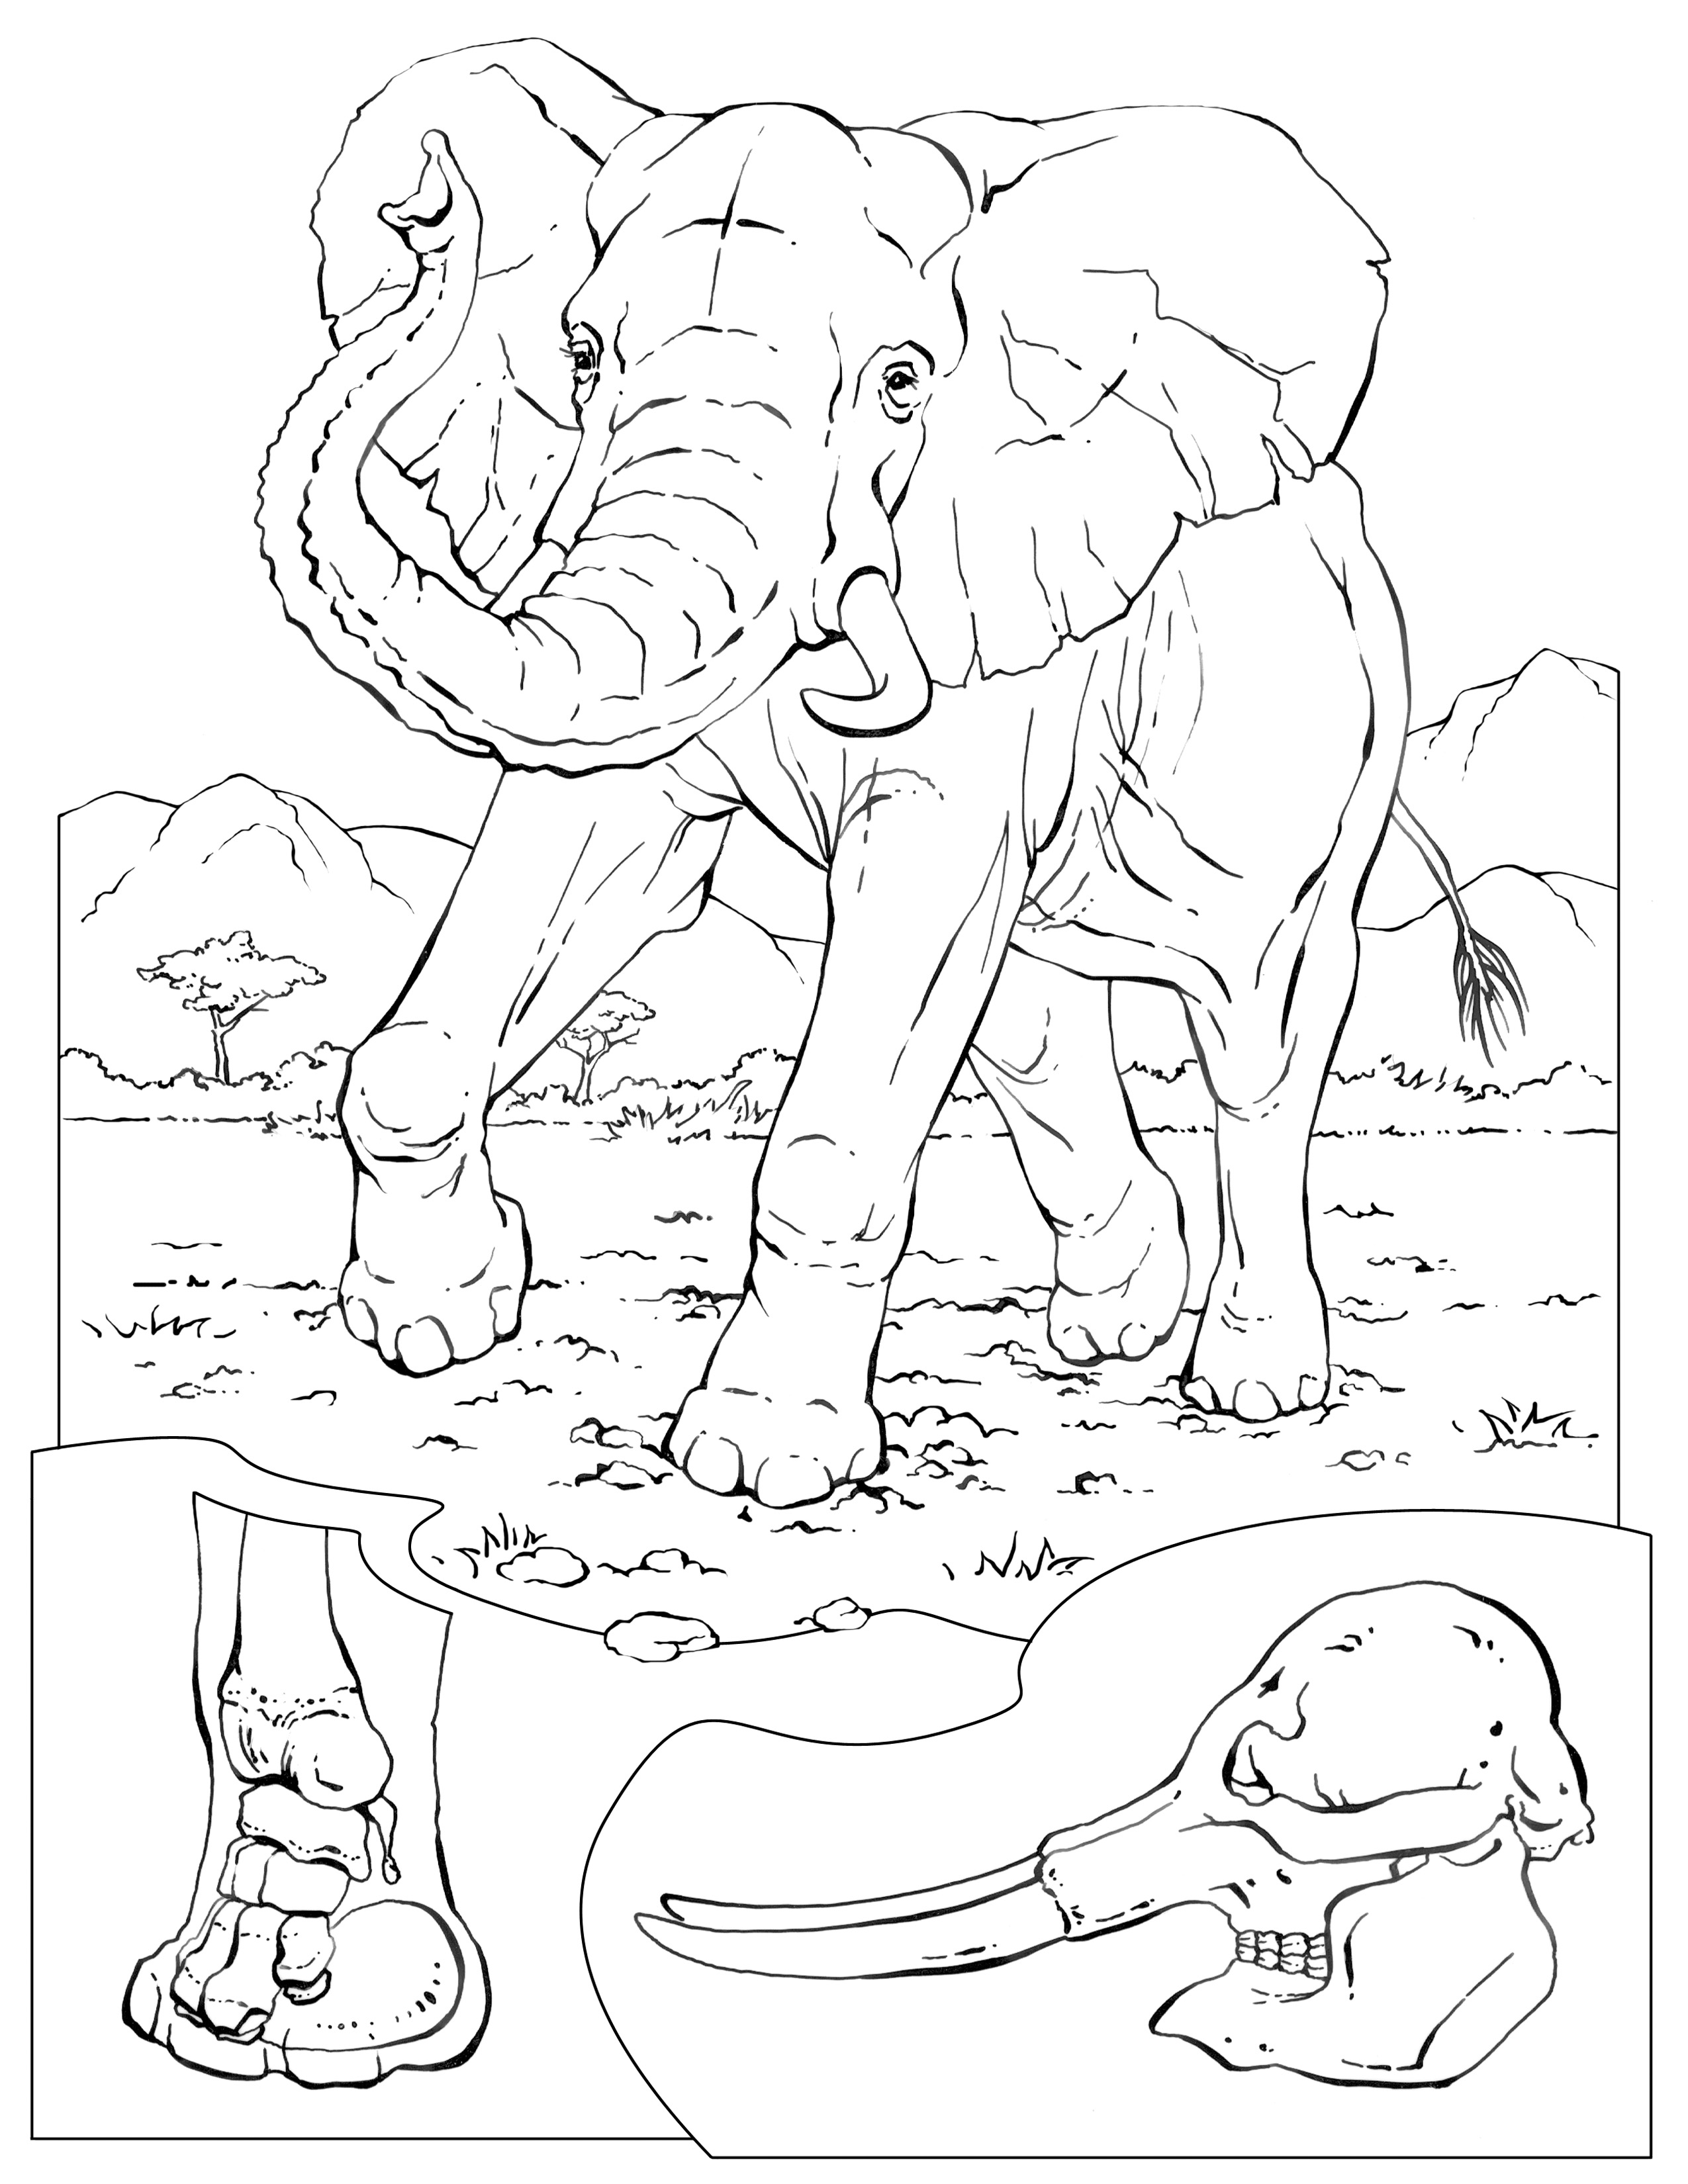 free printable elephant coloring pages free elephant coloring pages pages elephant printable free coloring